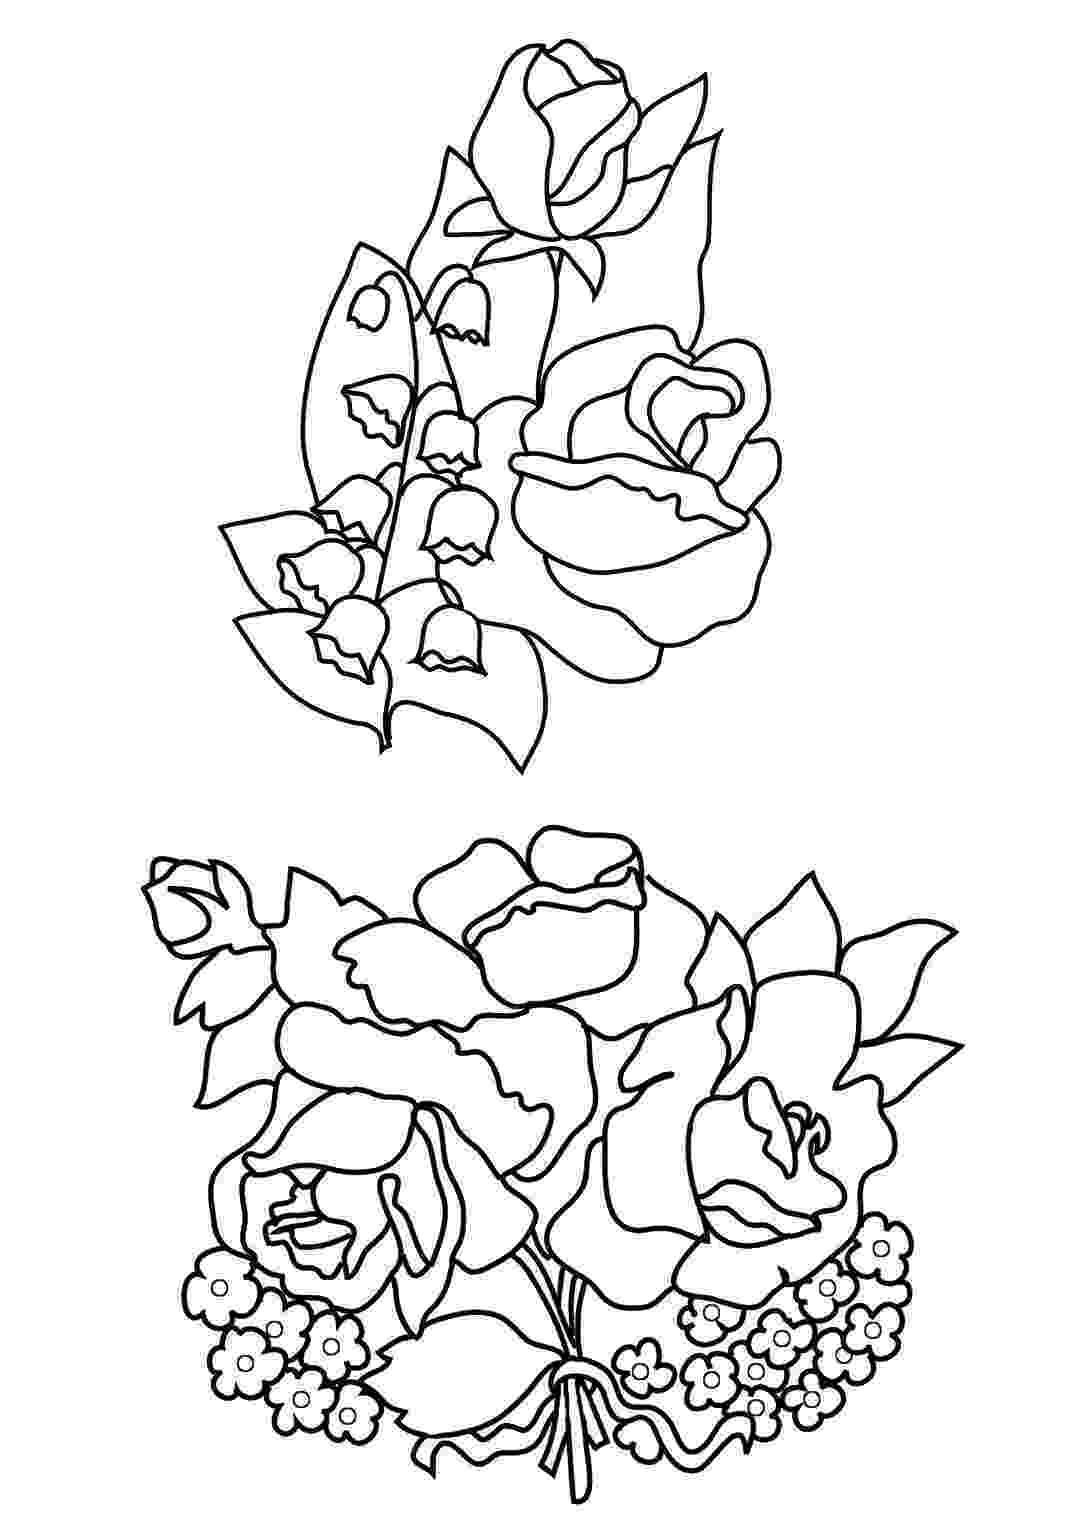 rose flower coloring page flower coloring pages flower rose page coloring